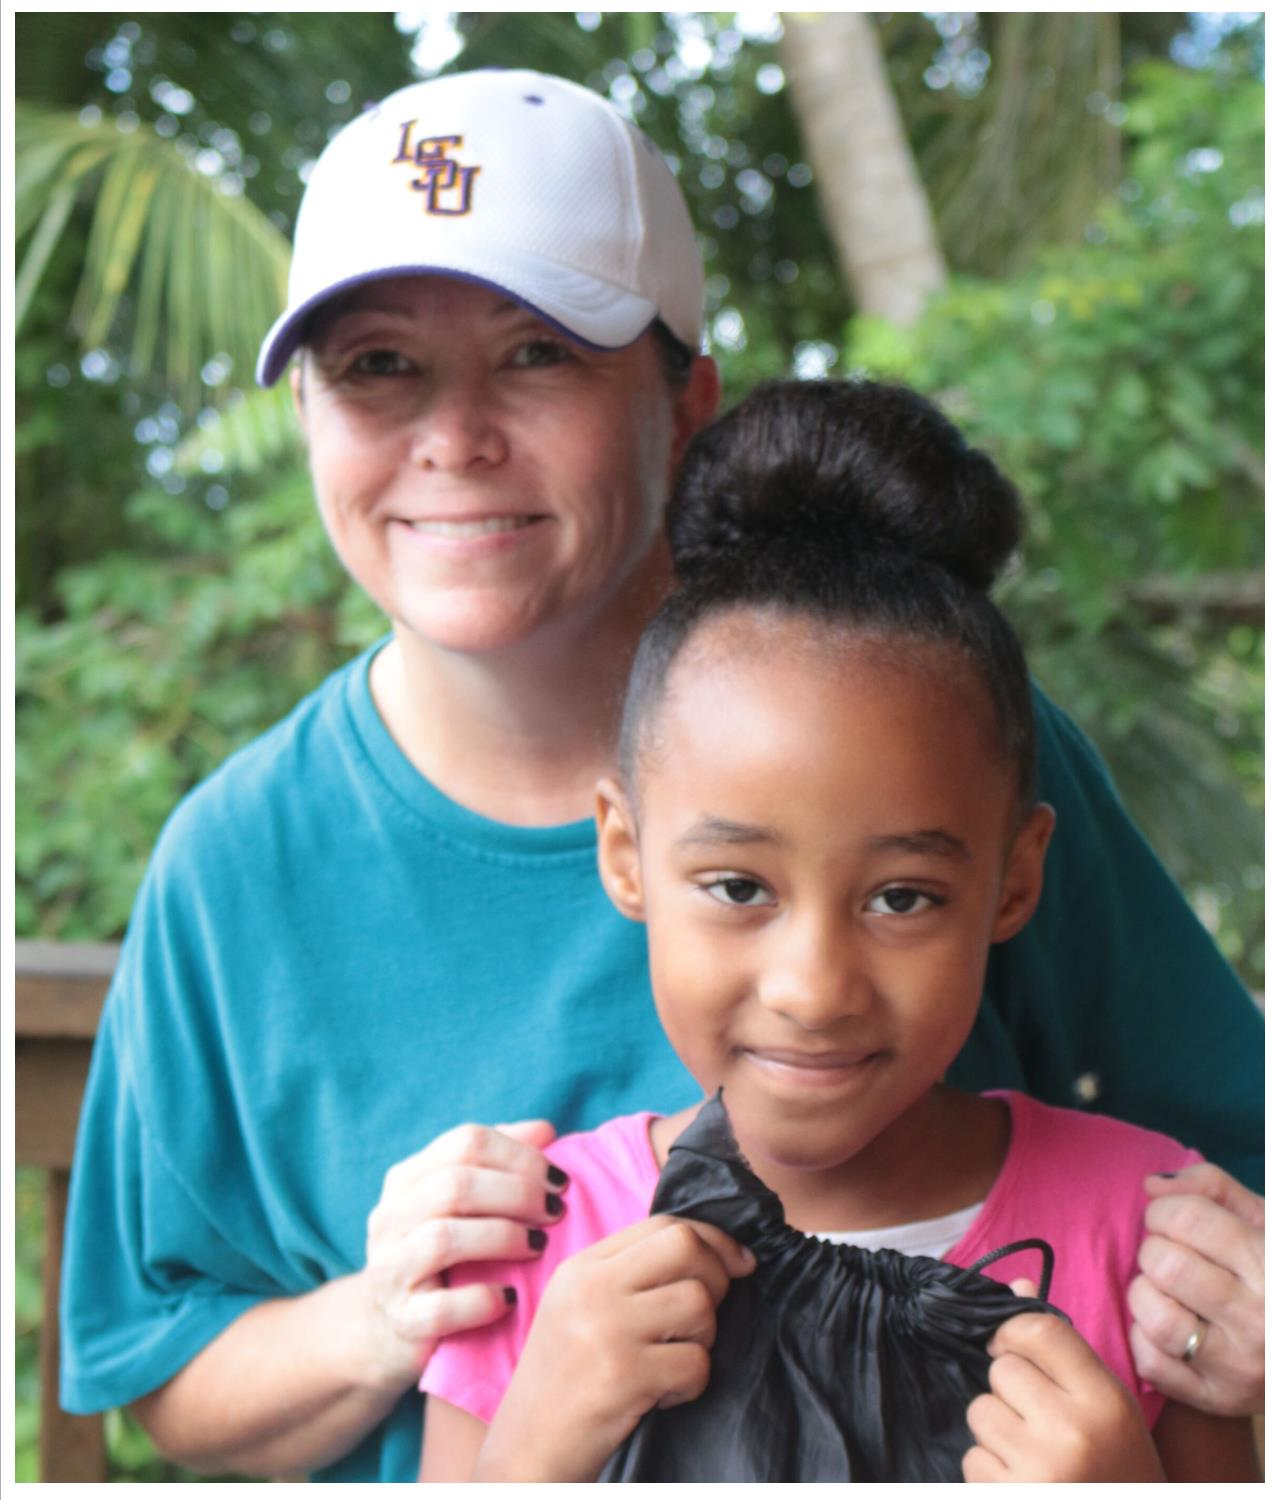 Our missionary, Robyn, with one of the children who receives a back pack of food each week